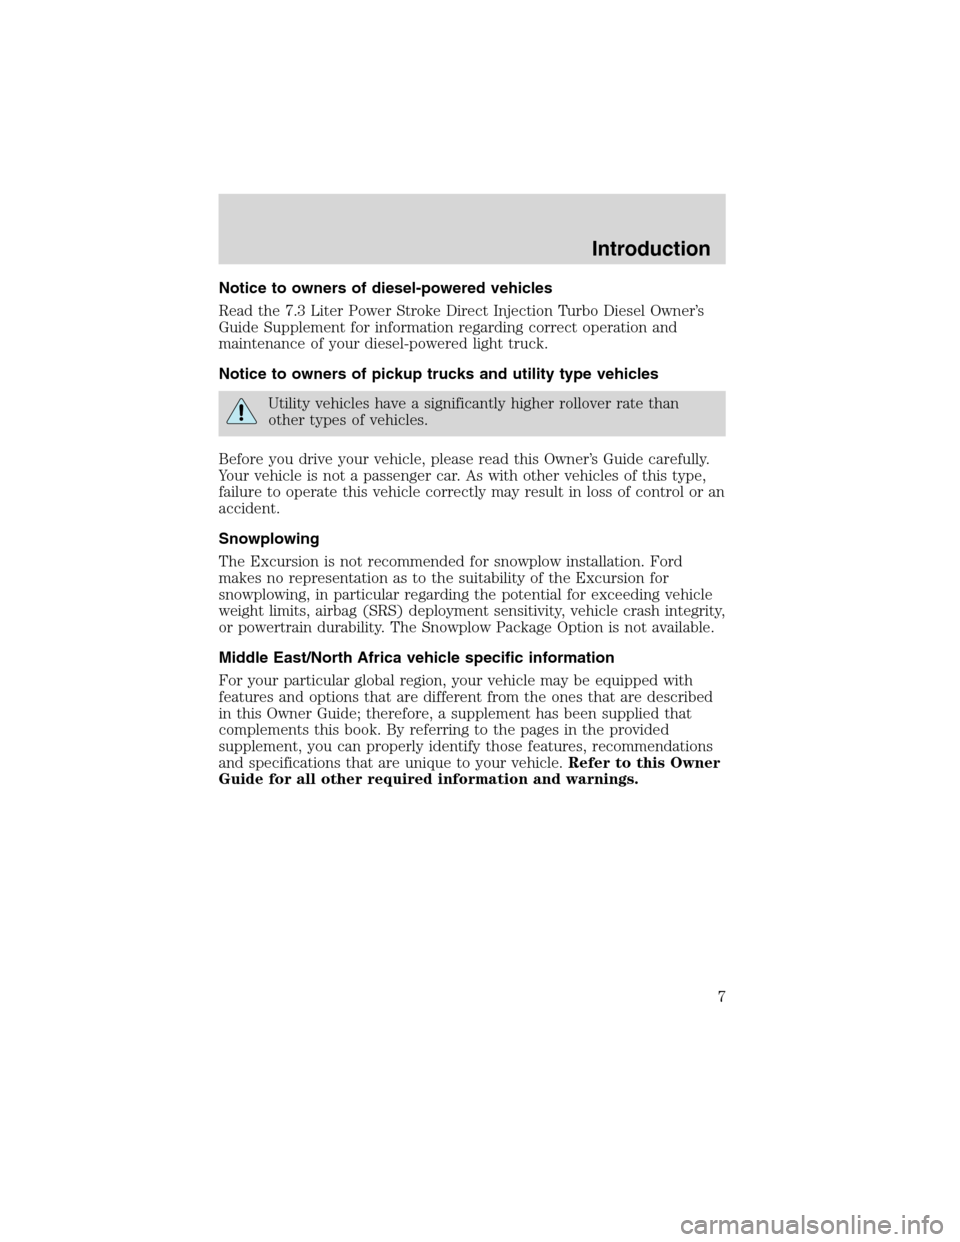 FORD EXCURSION 2004 1.G Owners Manual, Page 7